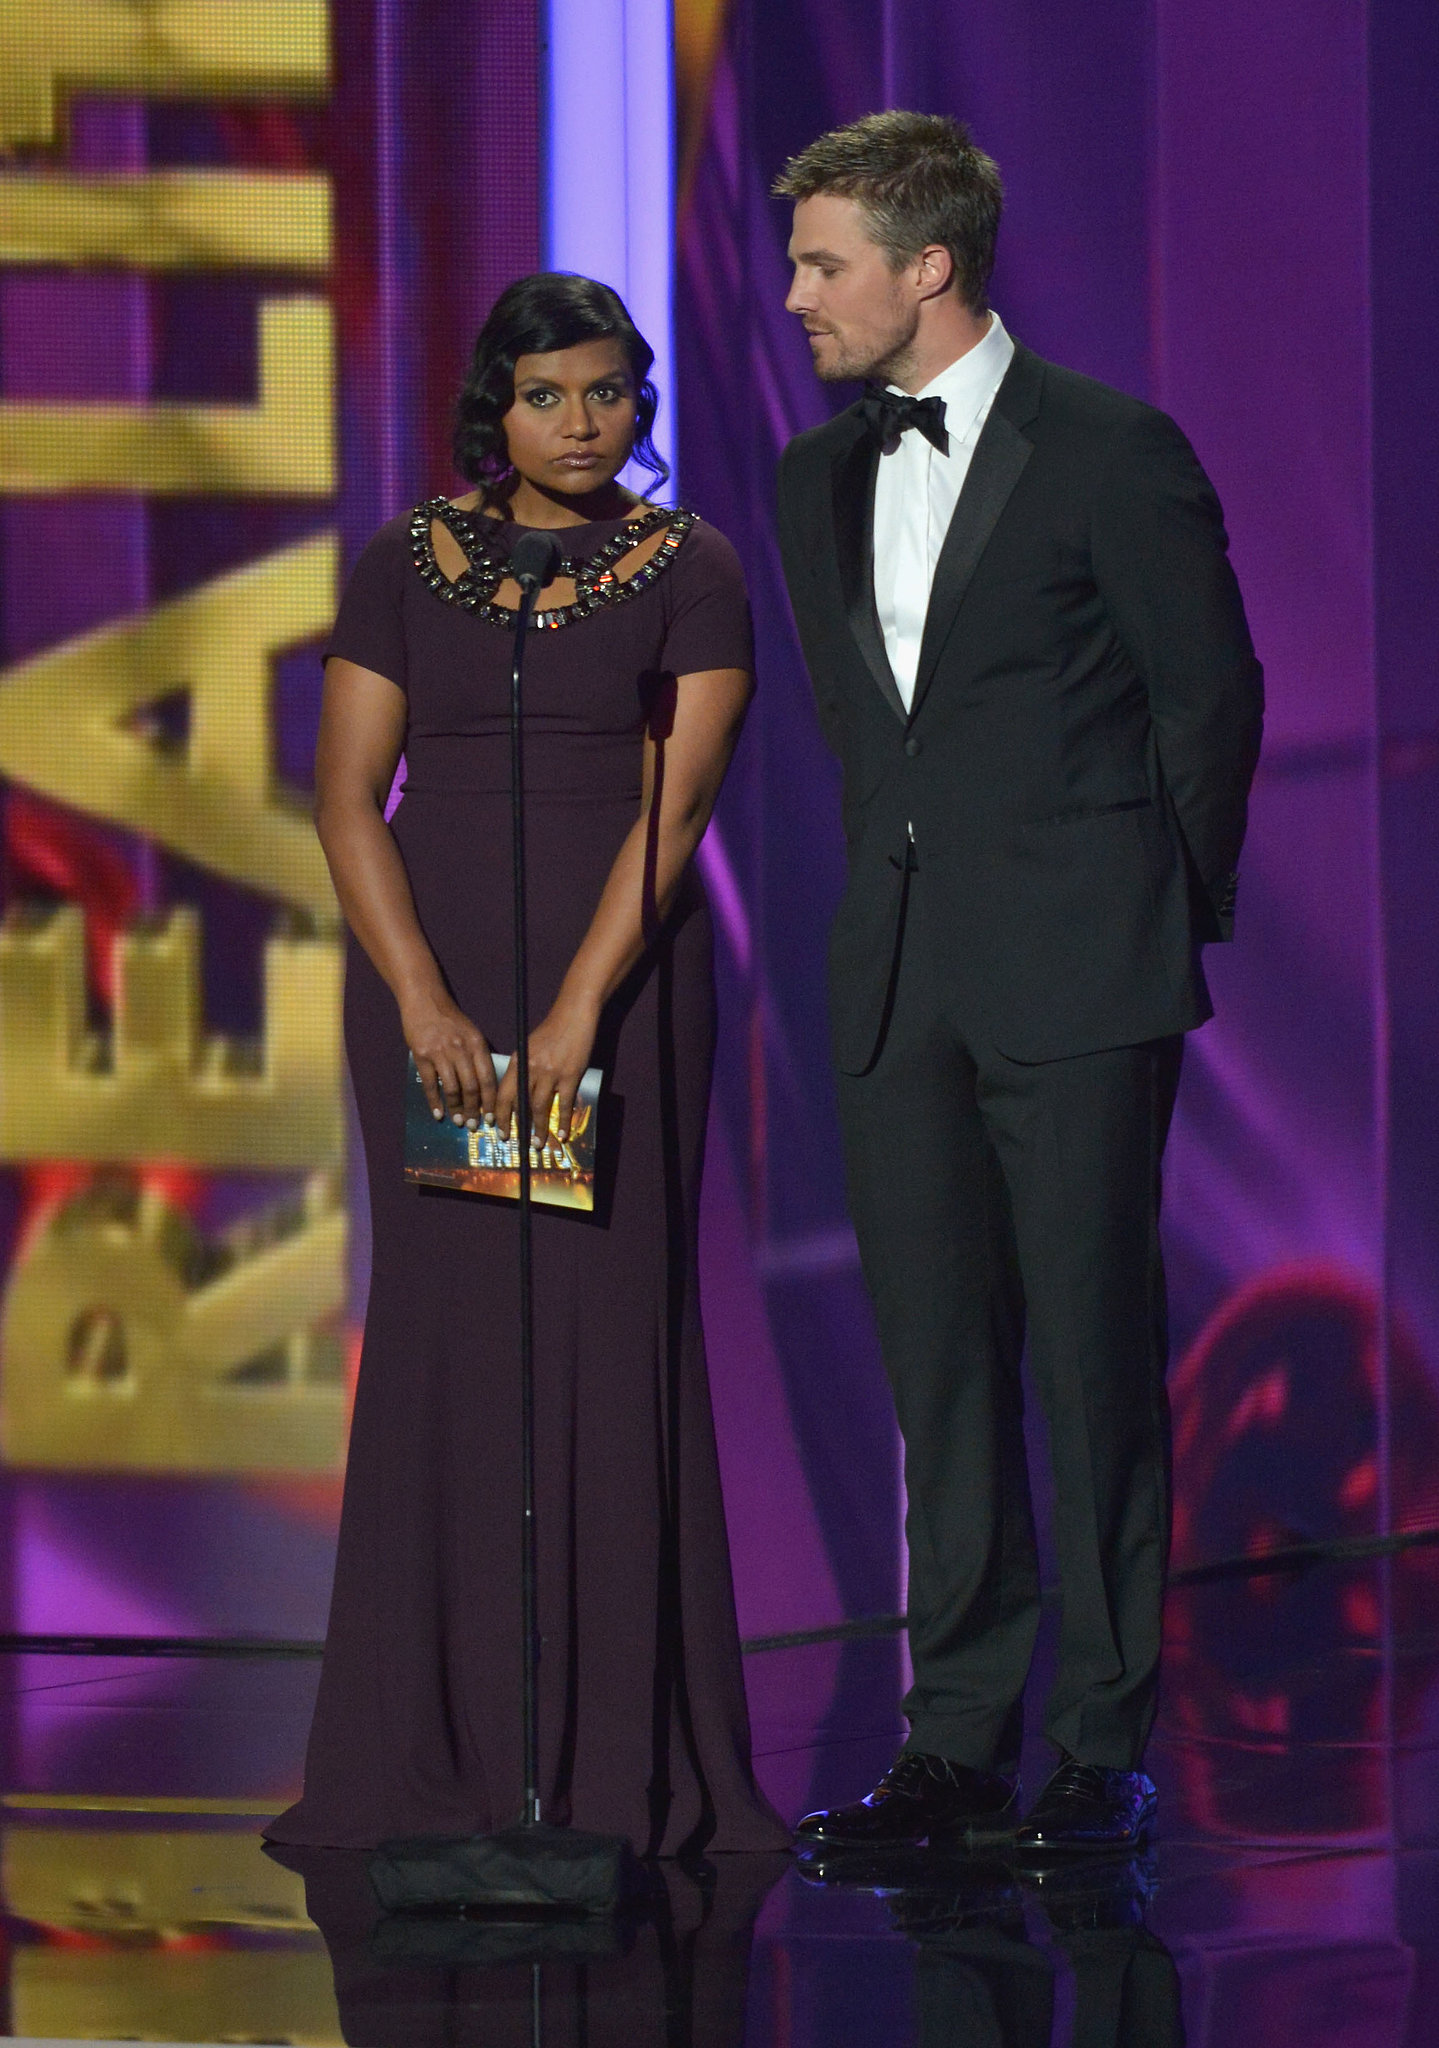 Mindy Kaling presented with Arrow's Stephen A